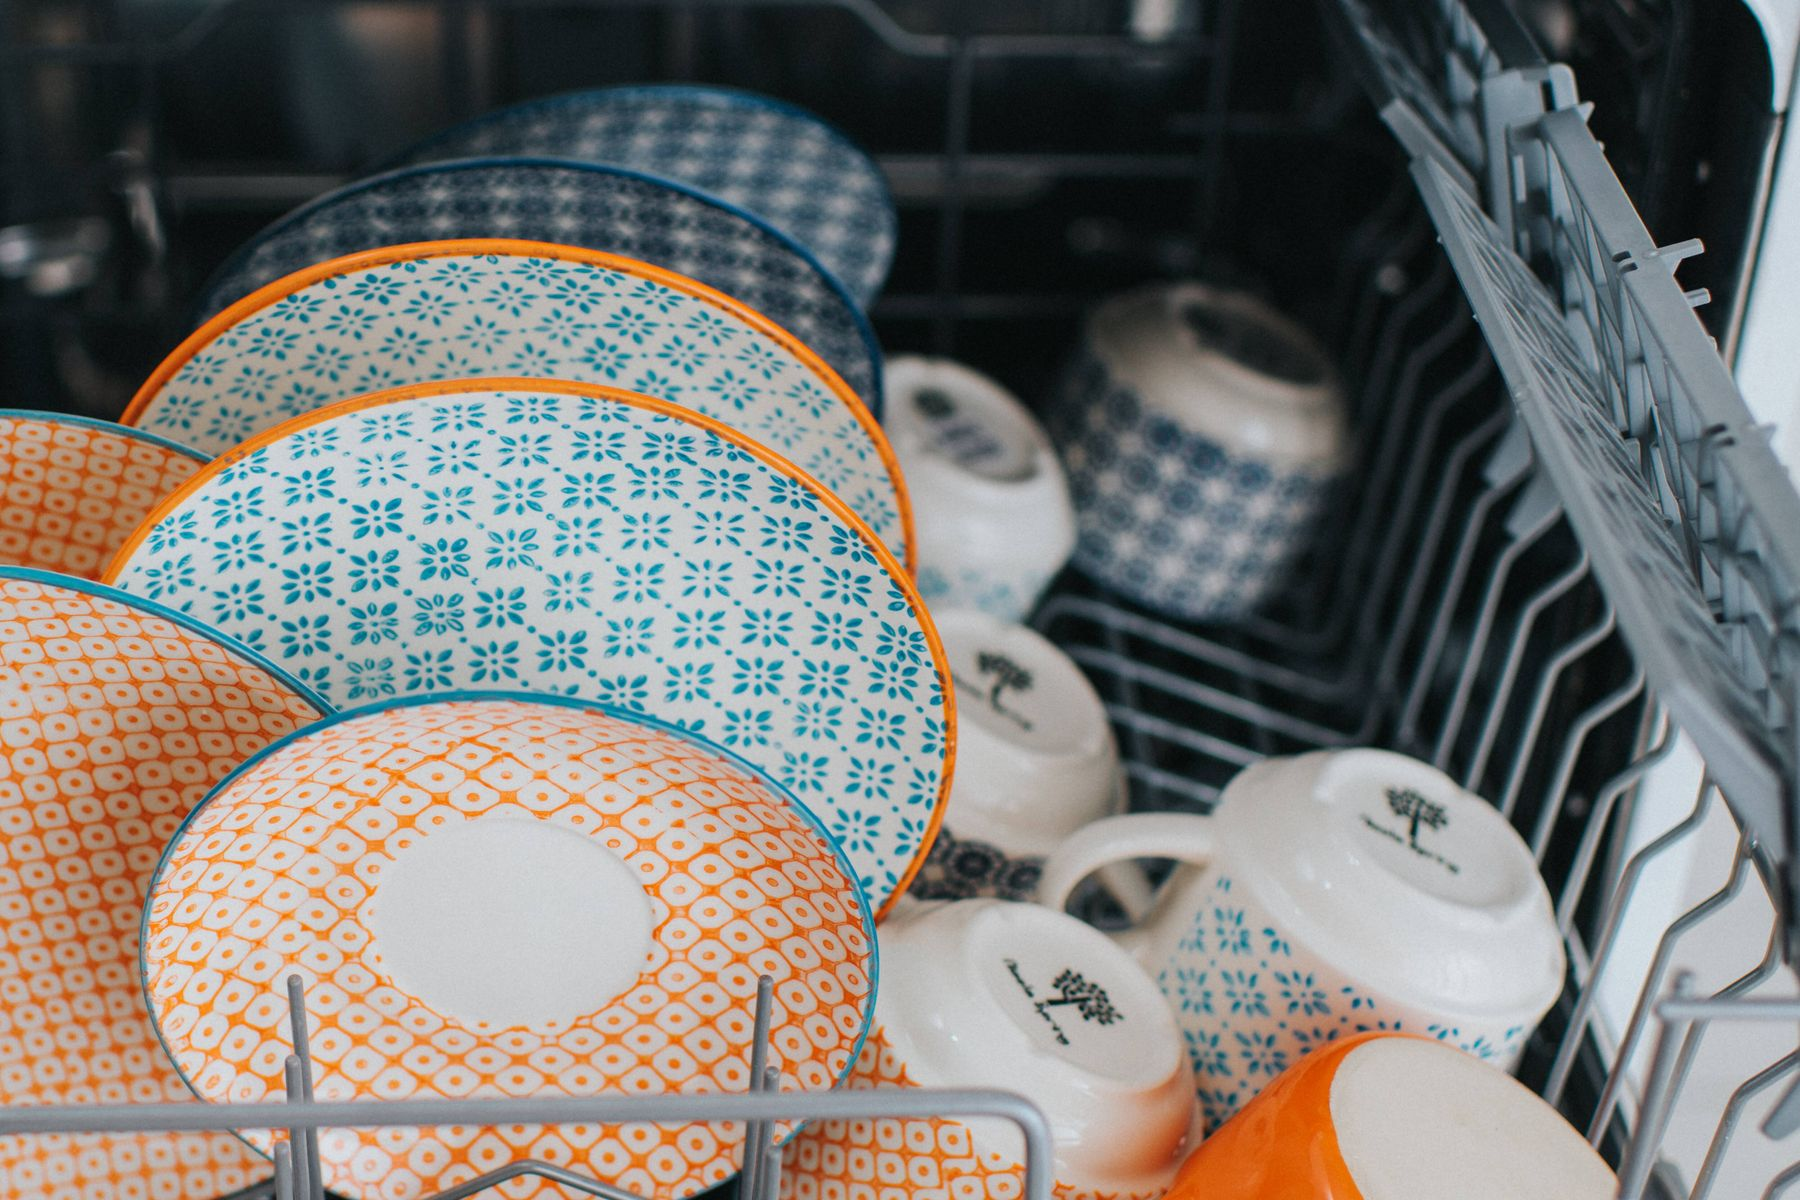 Dishes and cups in dishwasher